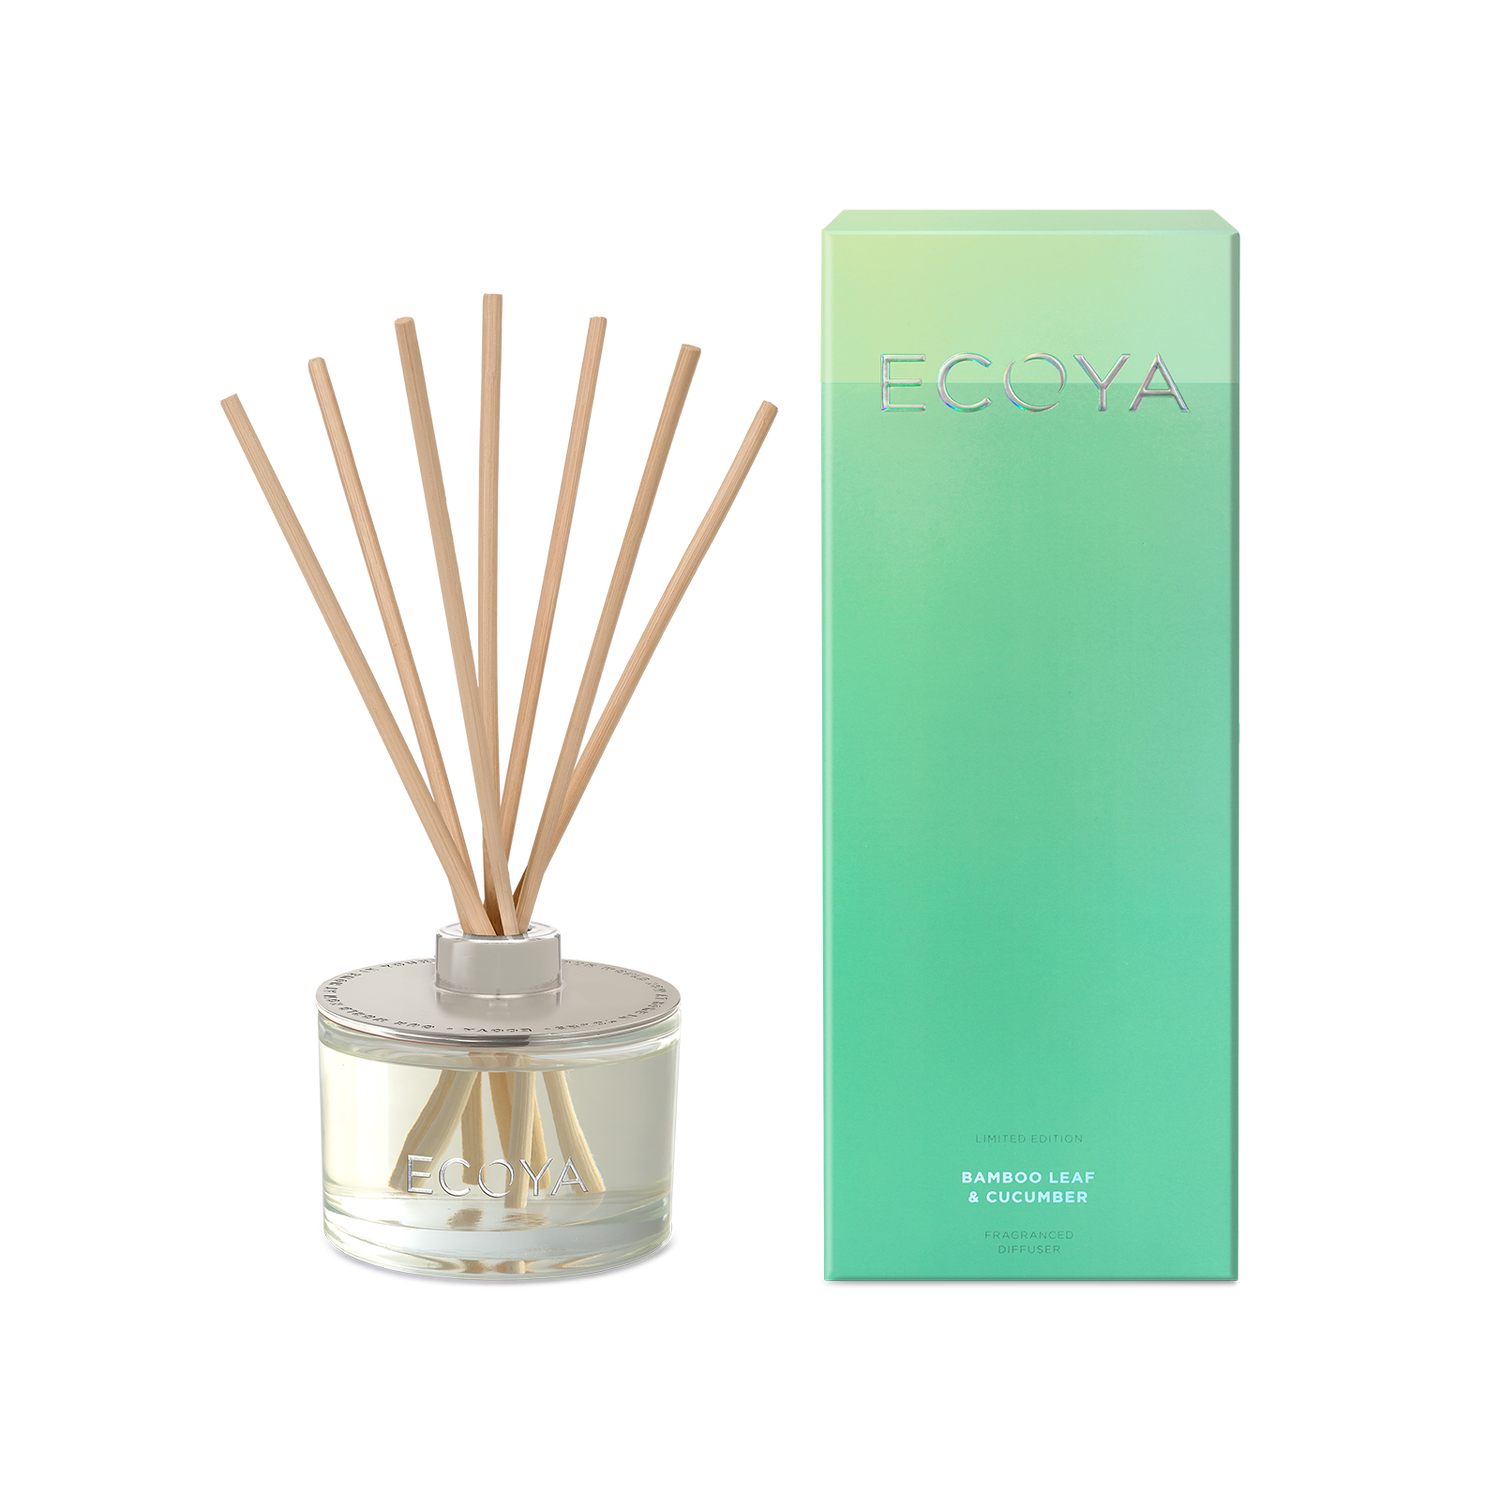 ECOYA Limited Edition Fragrance